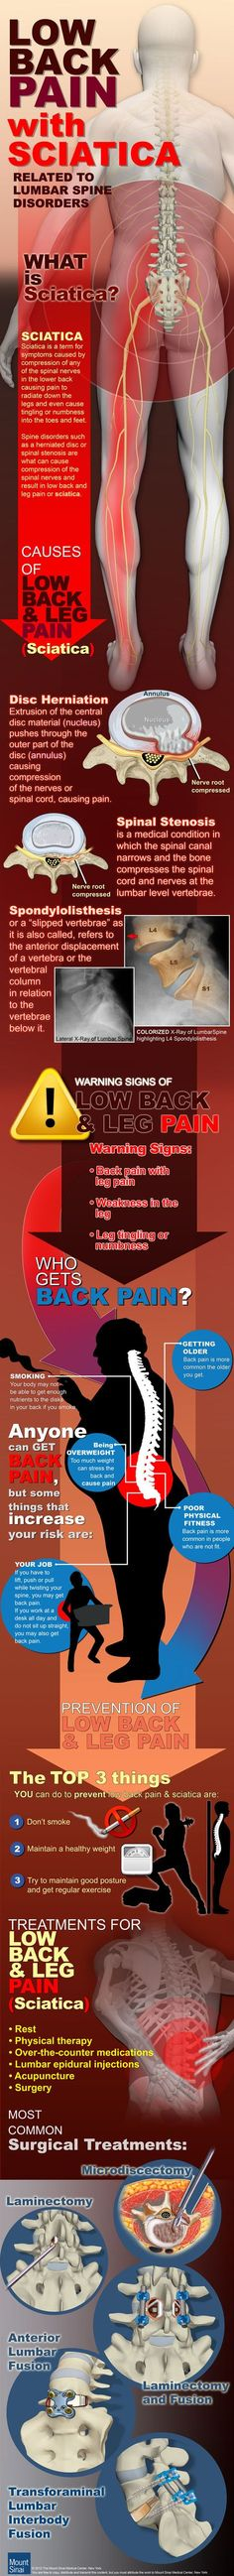 Low back pain with sciatica | www.massagestore.com